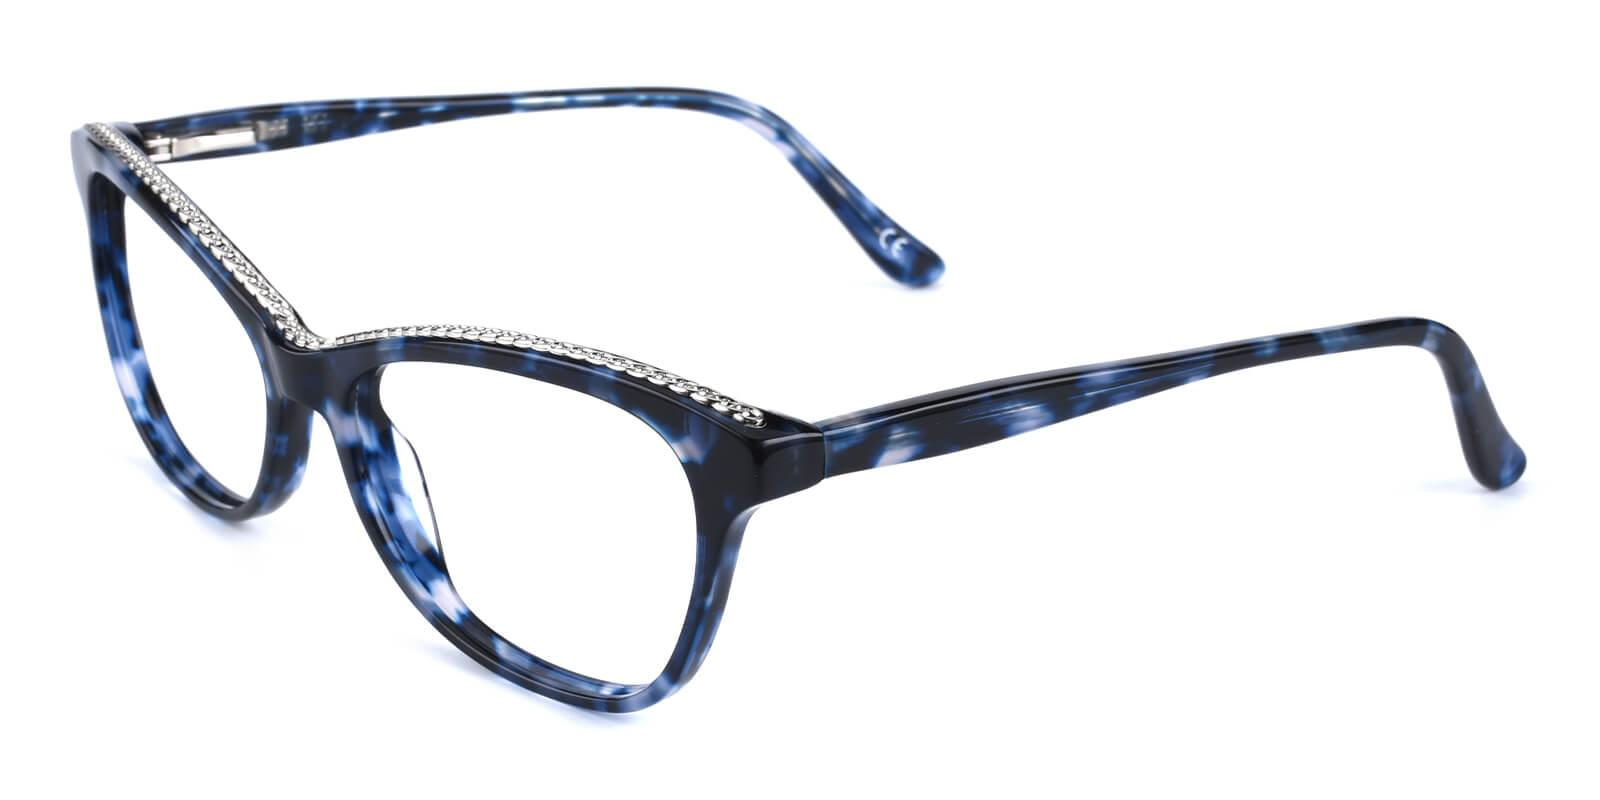 Her-Striped-Cat-Acetate-Eyeglasses-additional1